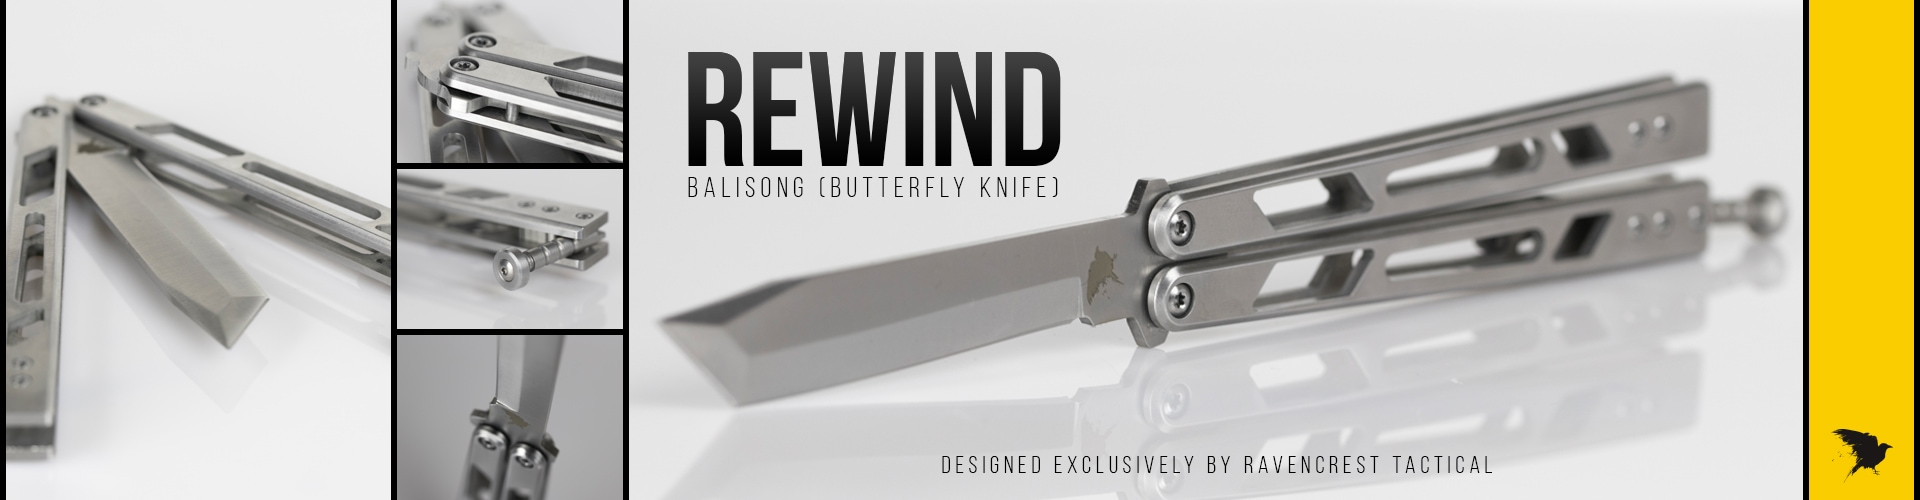 RavenCrest Tactical Rewind Balisong Butterfly Knife